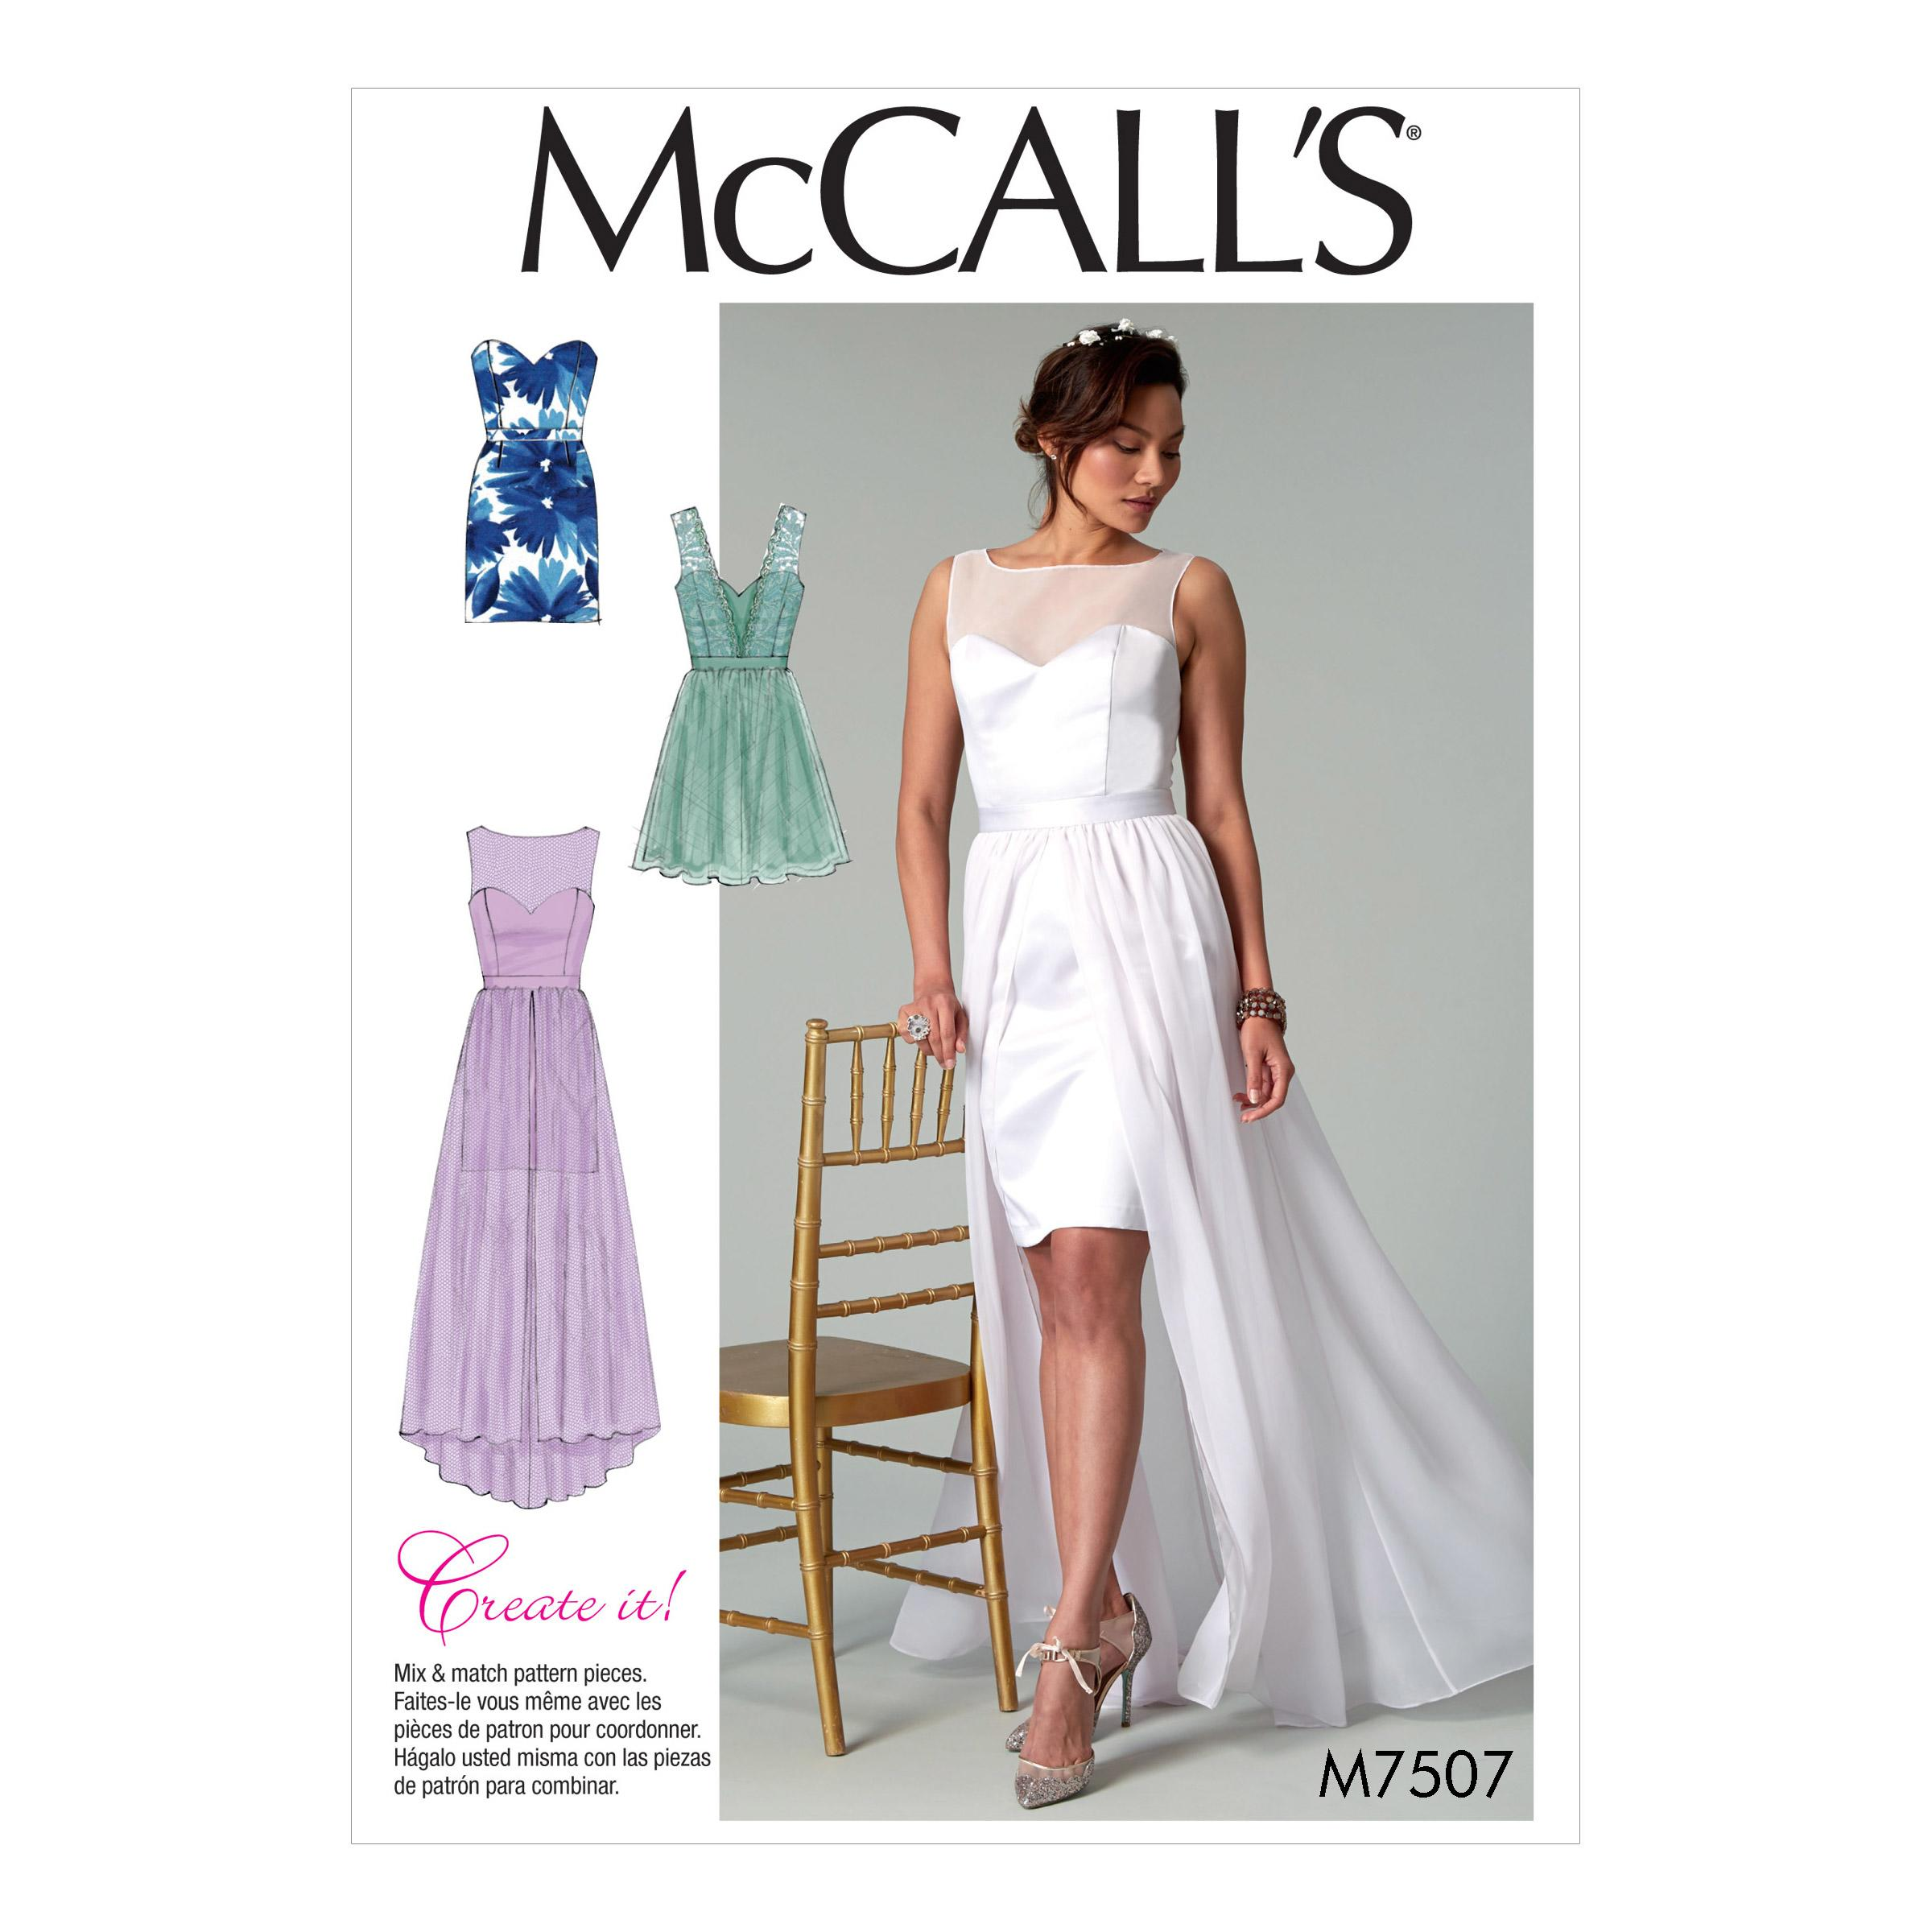 McCalls M7507 Misses Dresses, Misses Prom, Evening & Bridal